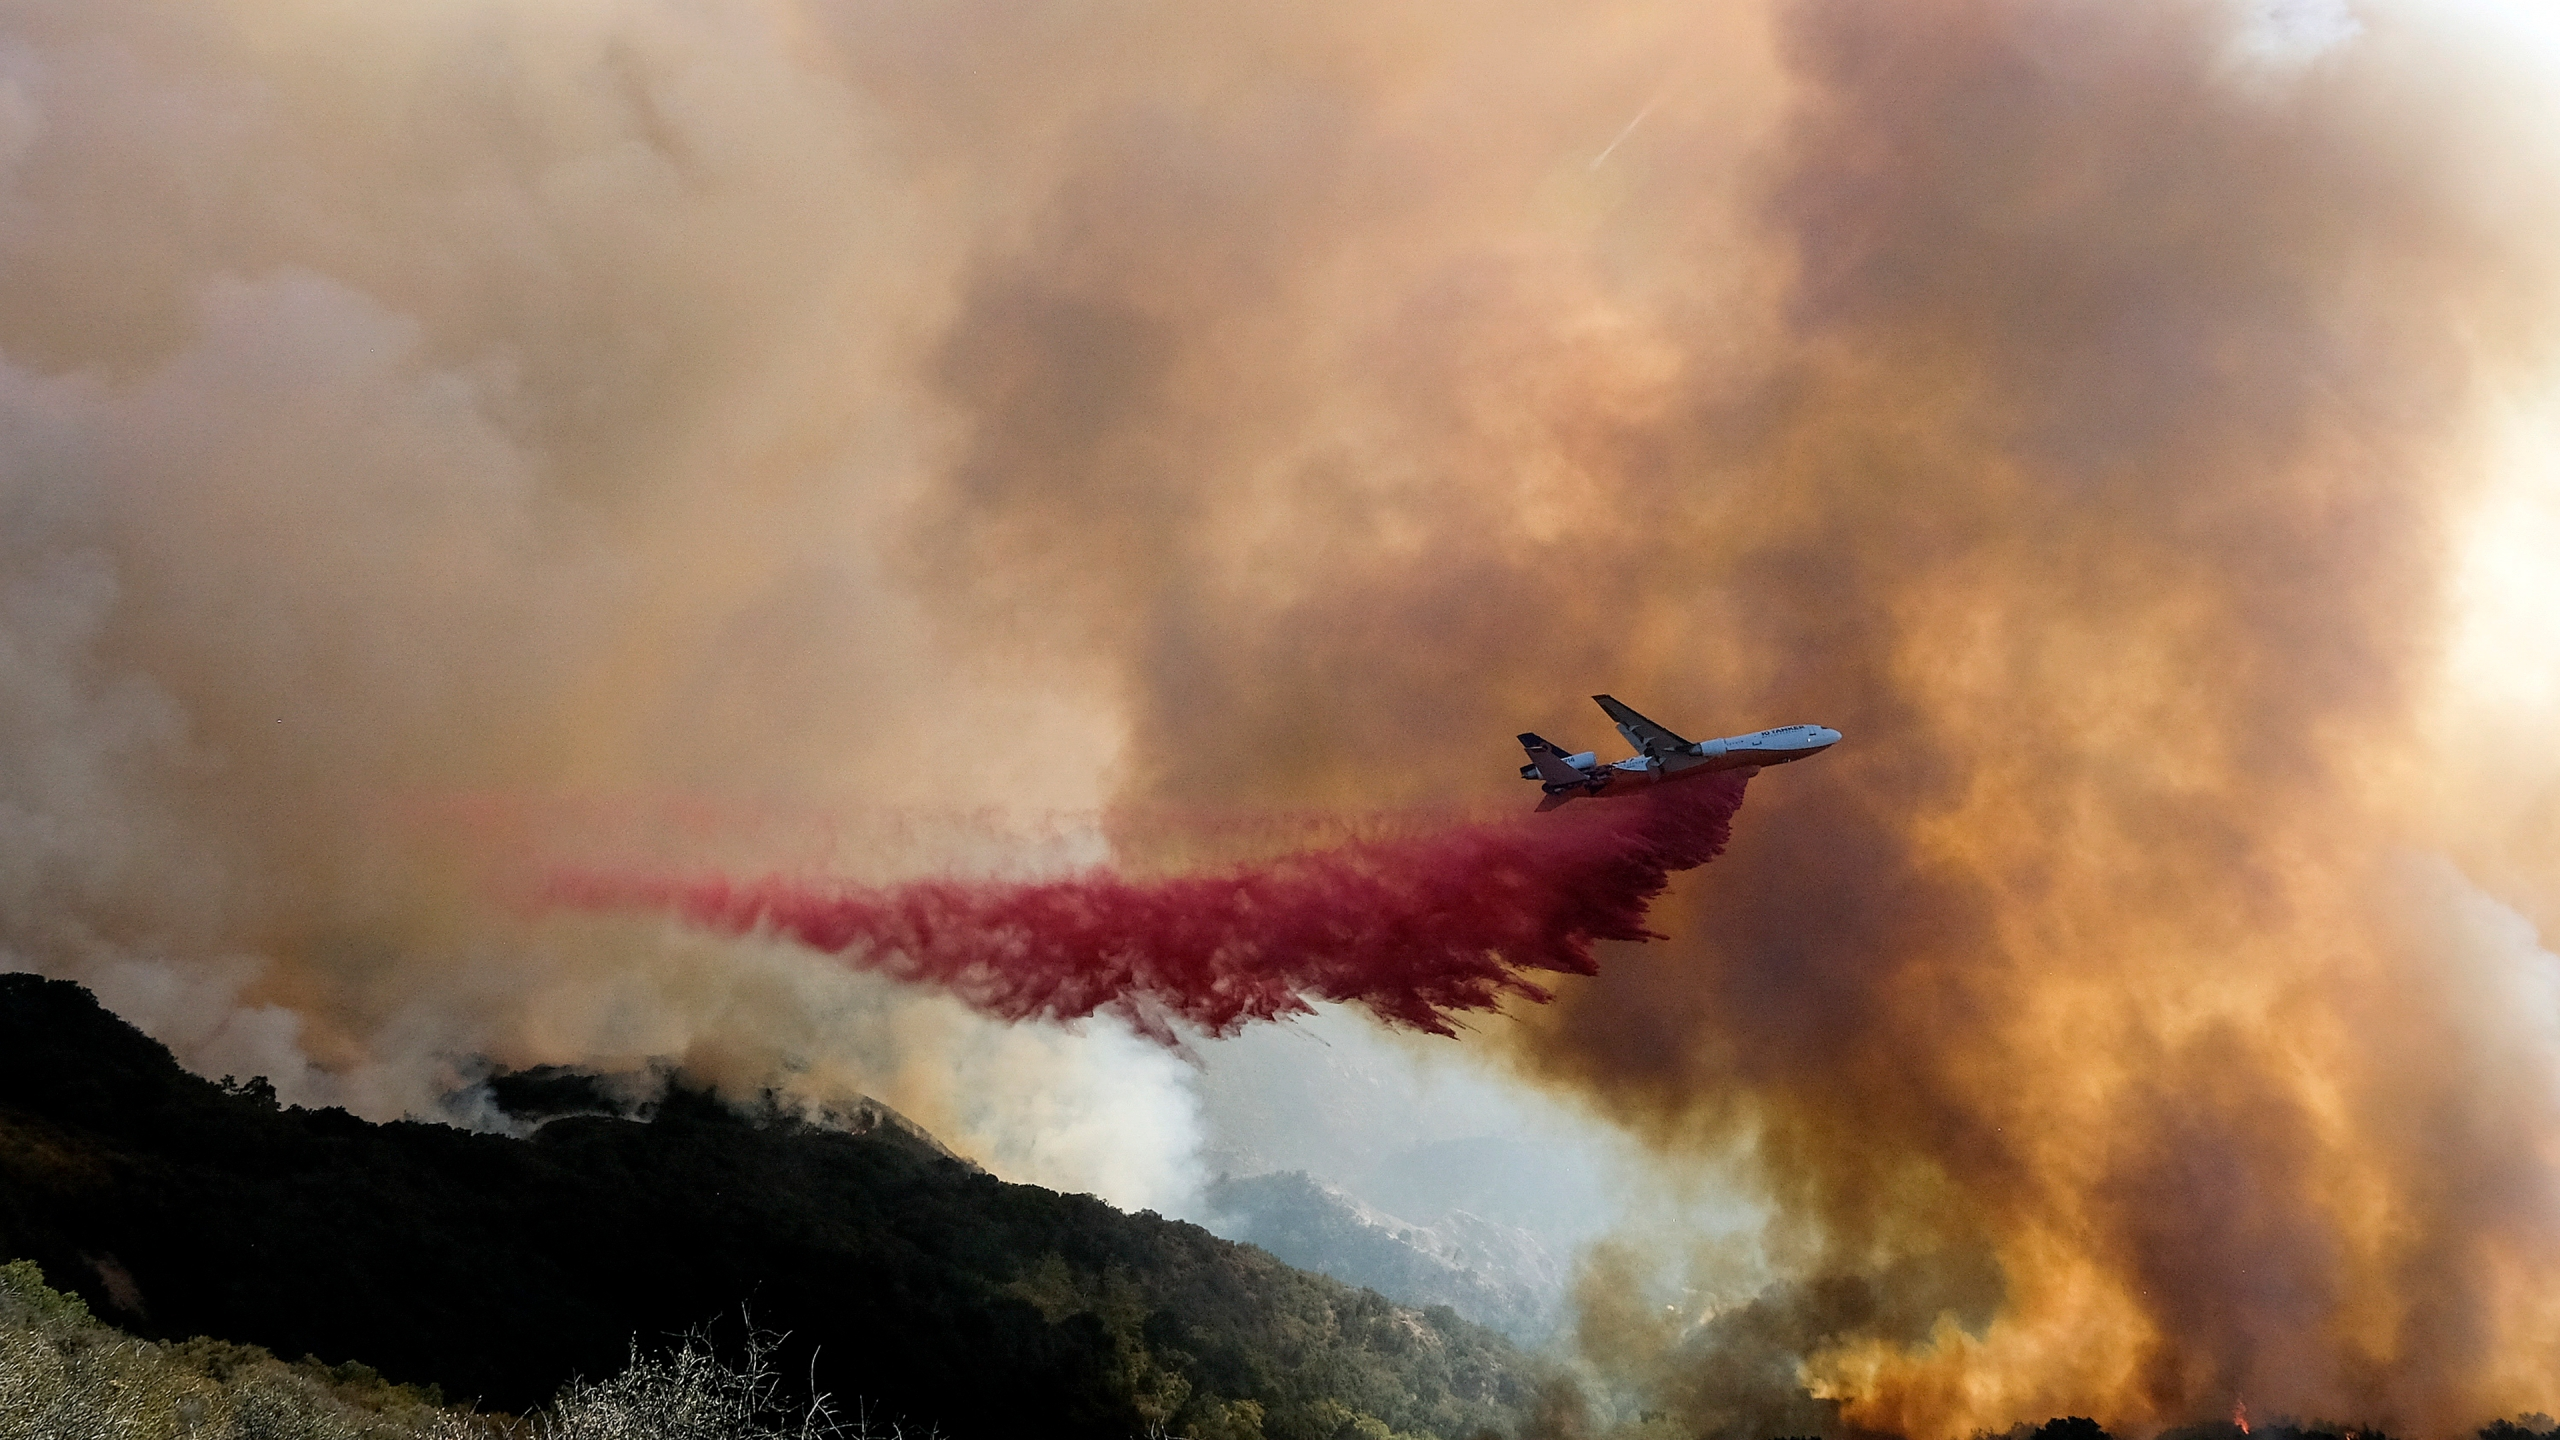 In this Oct. 13, 2021 photo, an air tanker drops retardant on a wildfire in Goleta, Calif. Firefighters persisted in making progress Saturday, Oct. 17, against a wildfire burning for a sixth day in Southern California coastal mountains. The Alisal Fire in the Santa Ynez Mountains west of Santa Barbara grew only slightly since Friday to nearly 27 square miles (69 square kilometers). It was 50% contained. (AP Photo/Ringo H.W. Chiu)